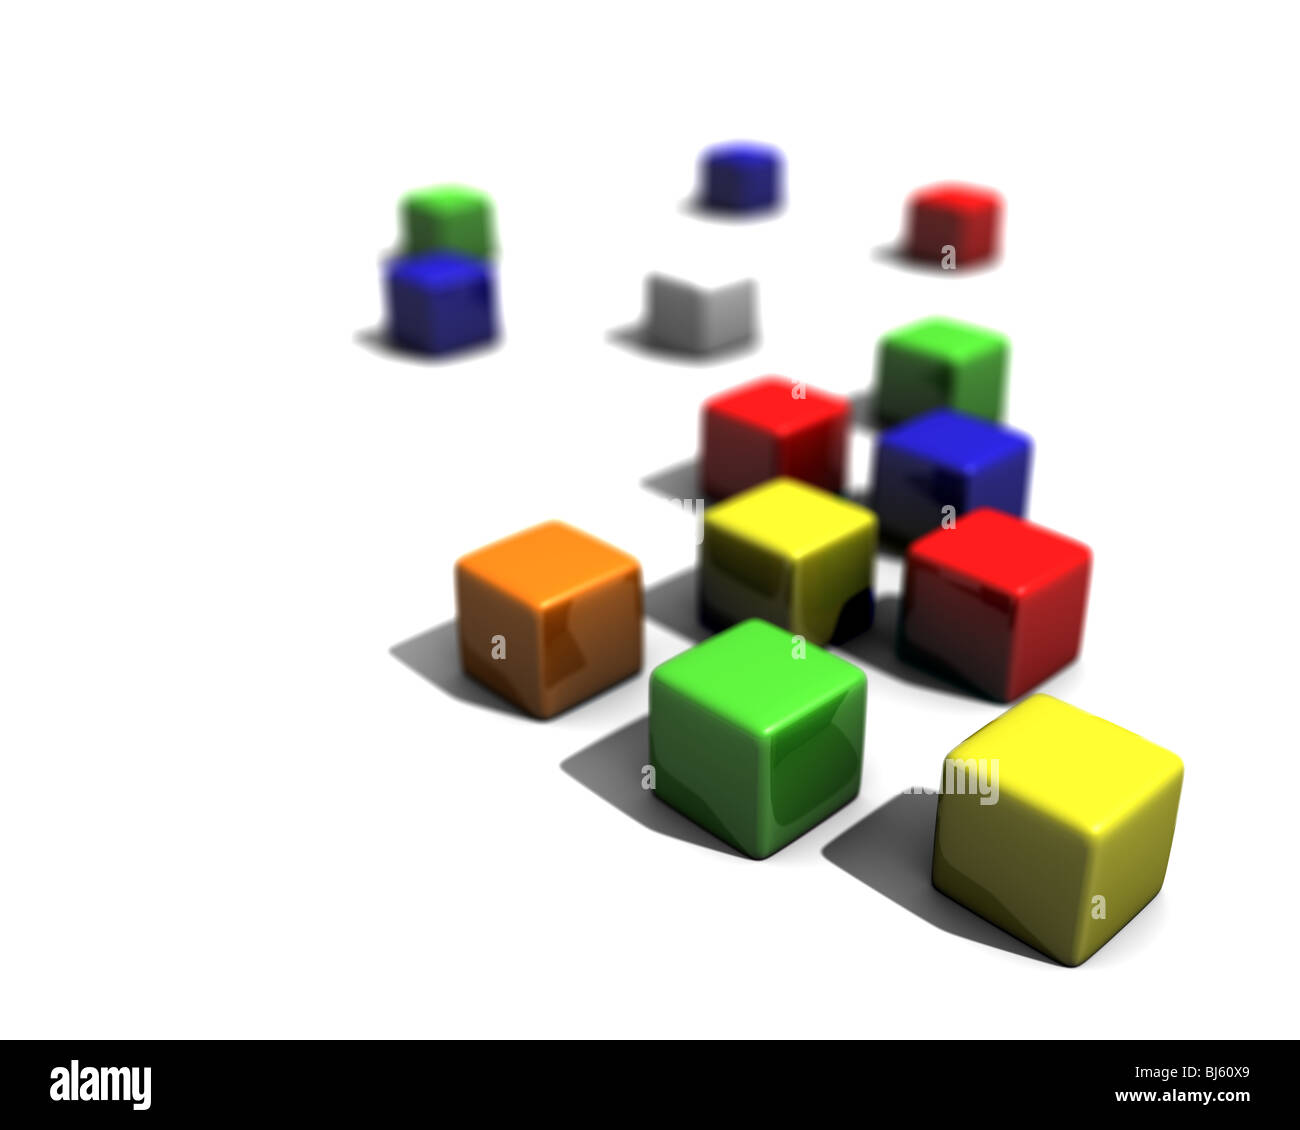 A bunch of colored blocks on a white ground. First block in focus and the rest blurring out due to depth of field - Stock Image